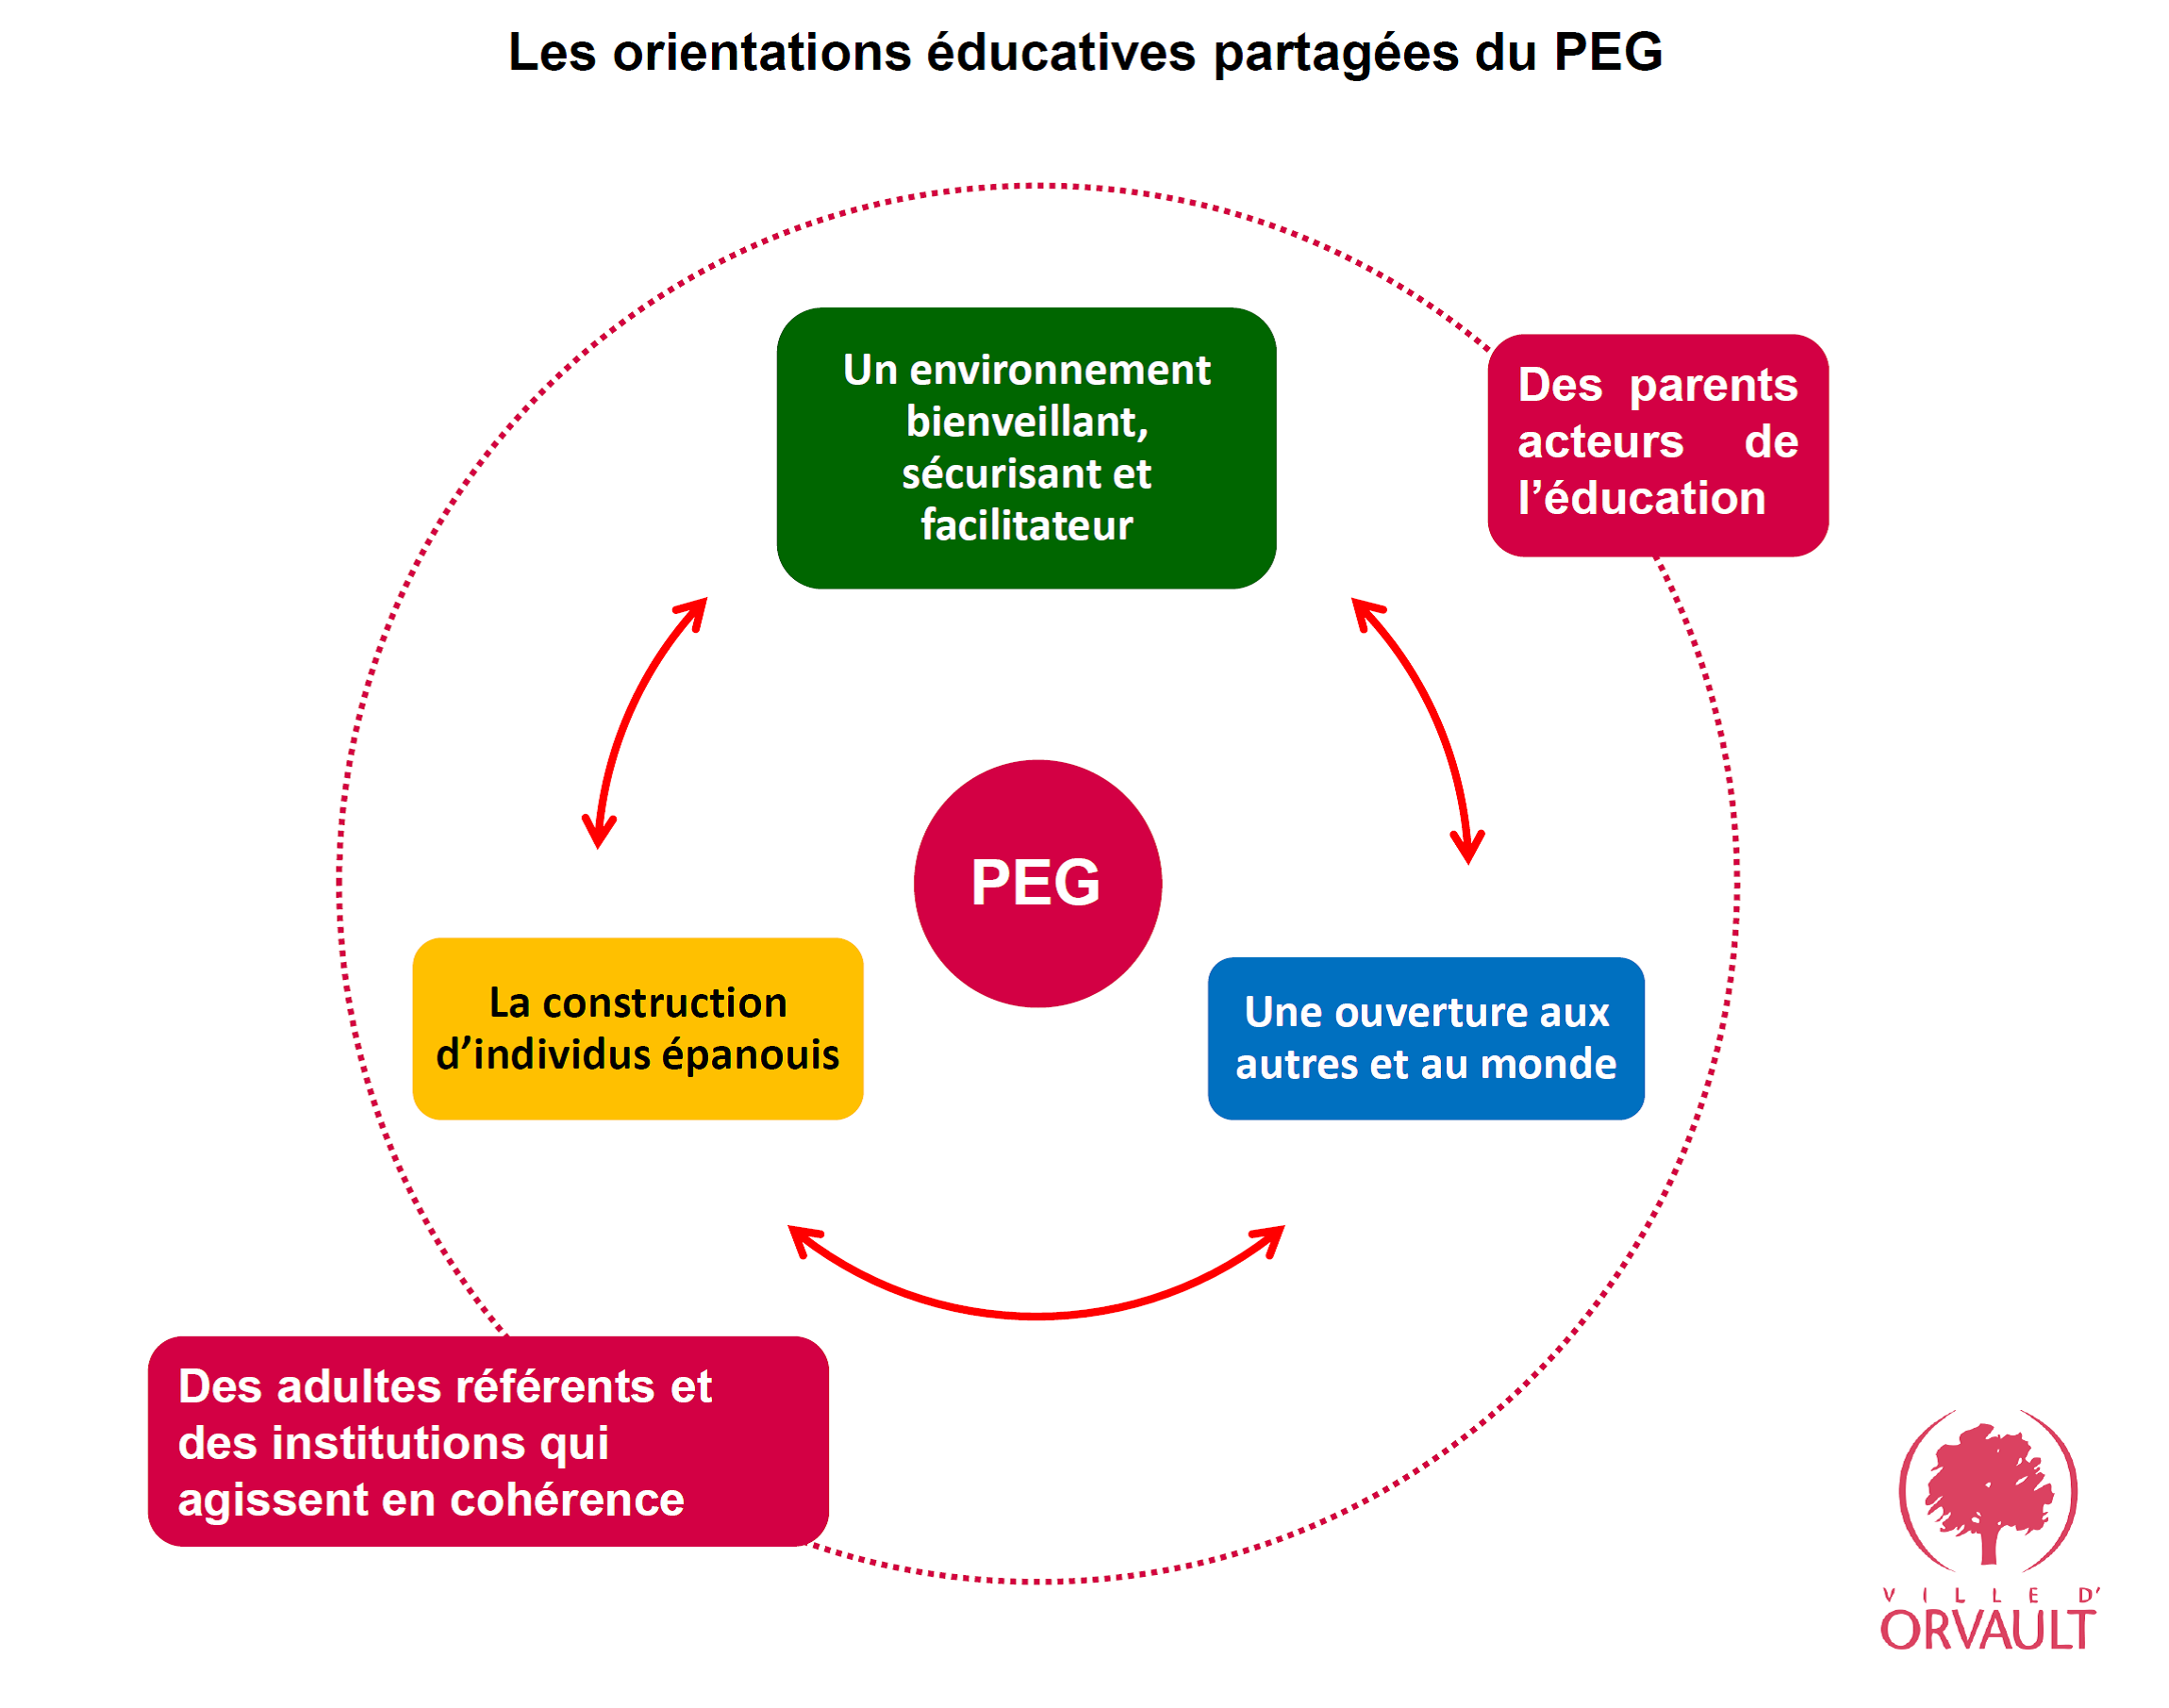 ORIENTATION EDUCATIVES PARTAGEES